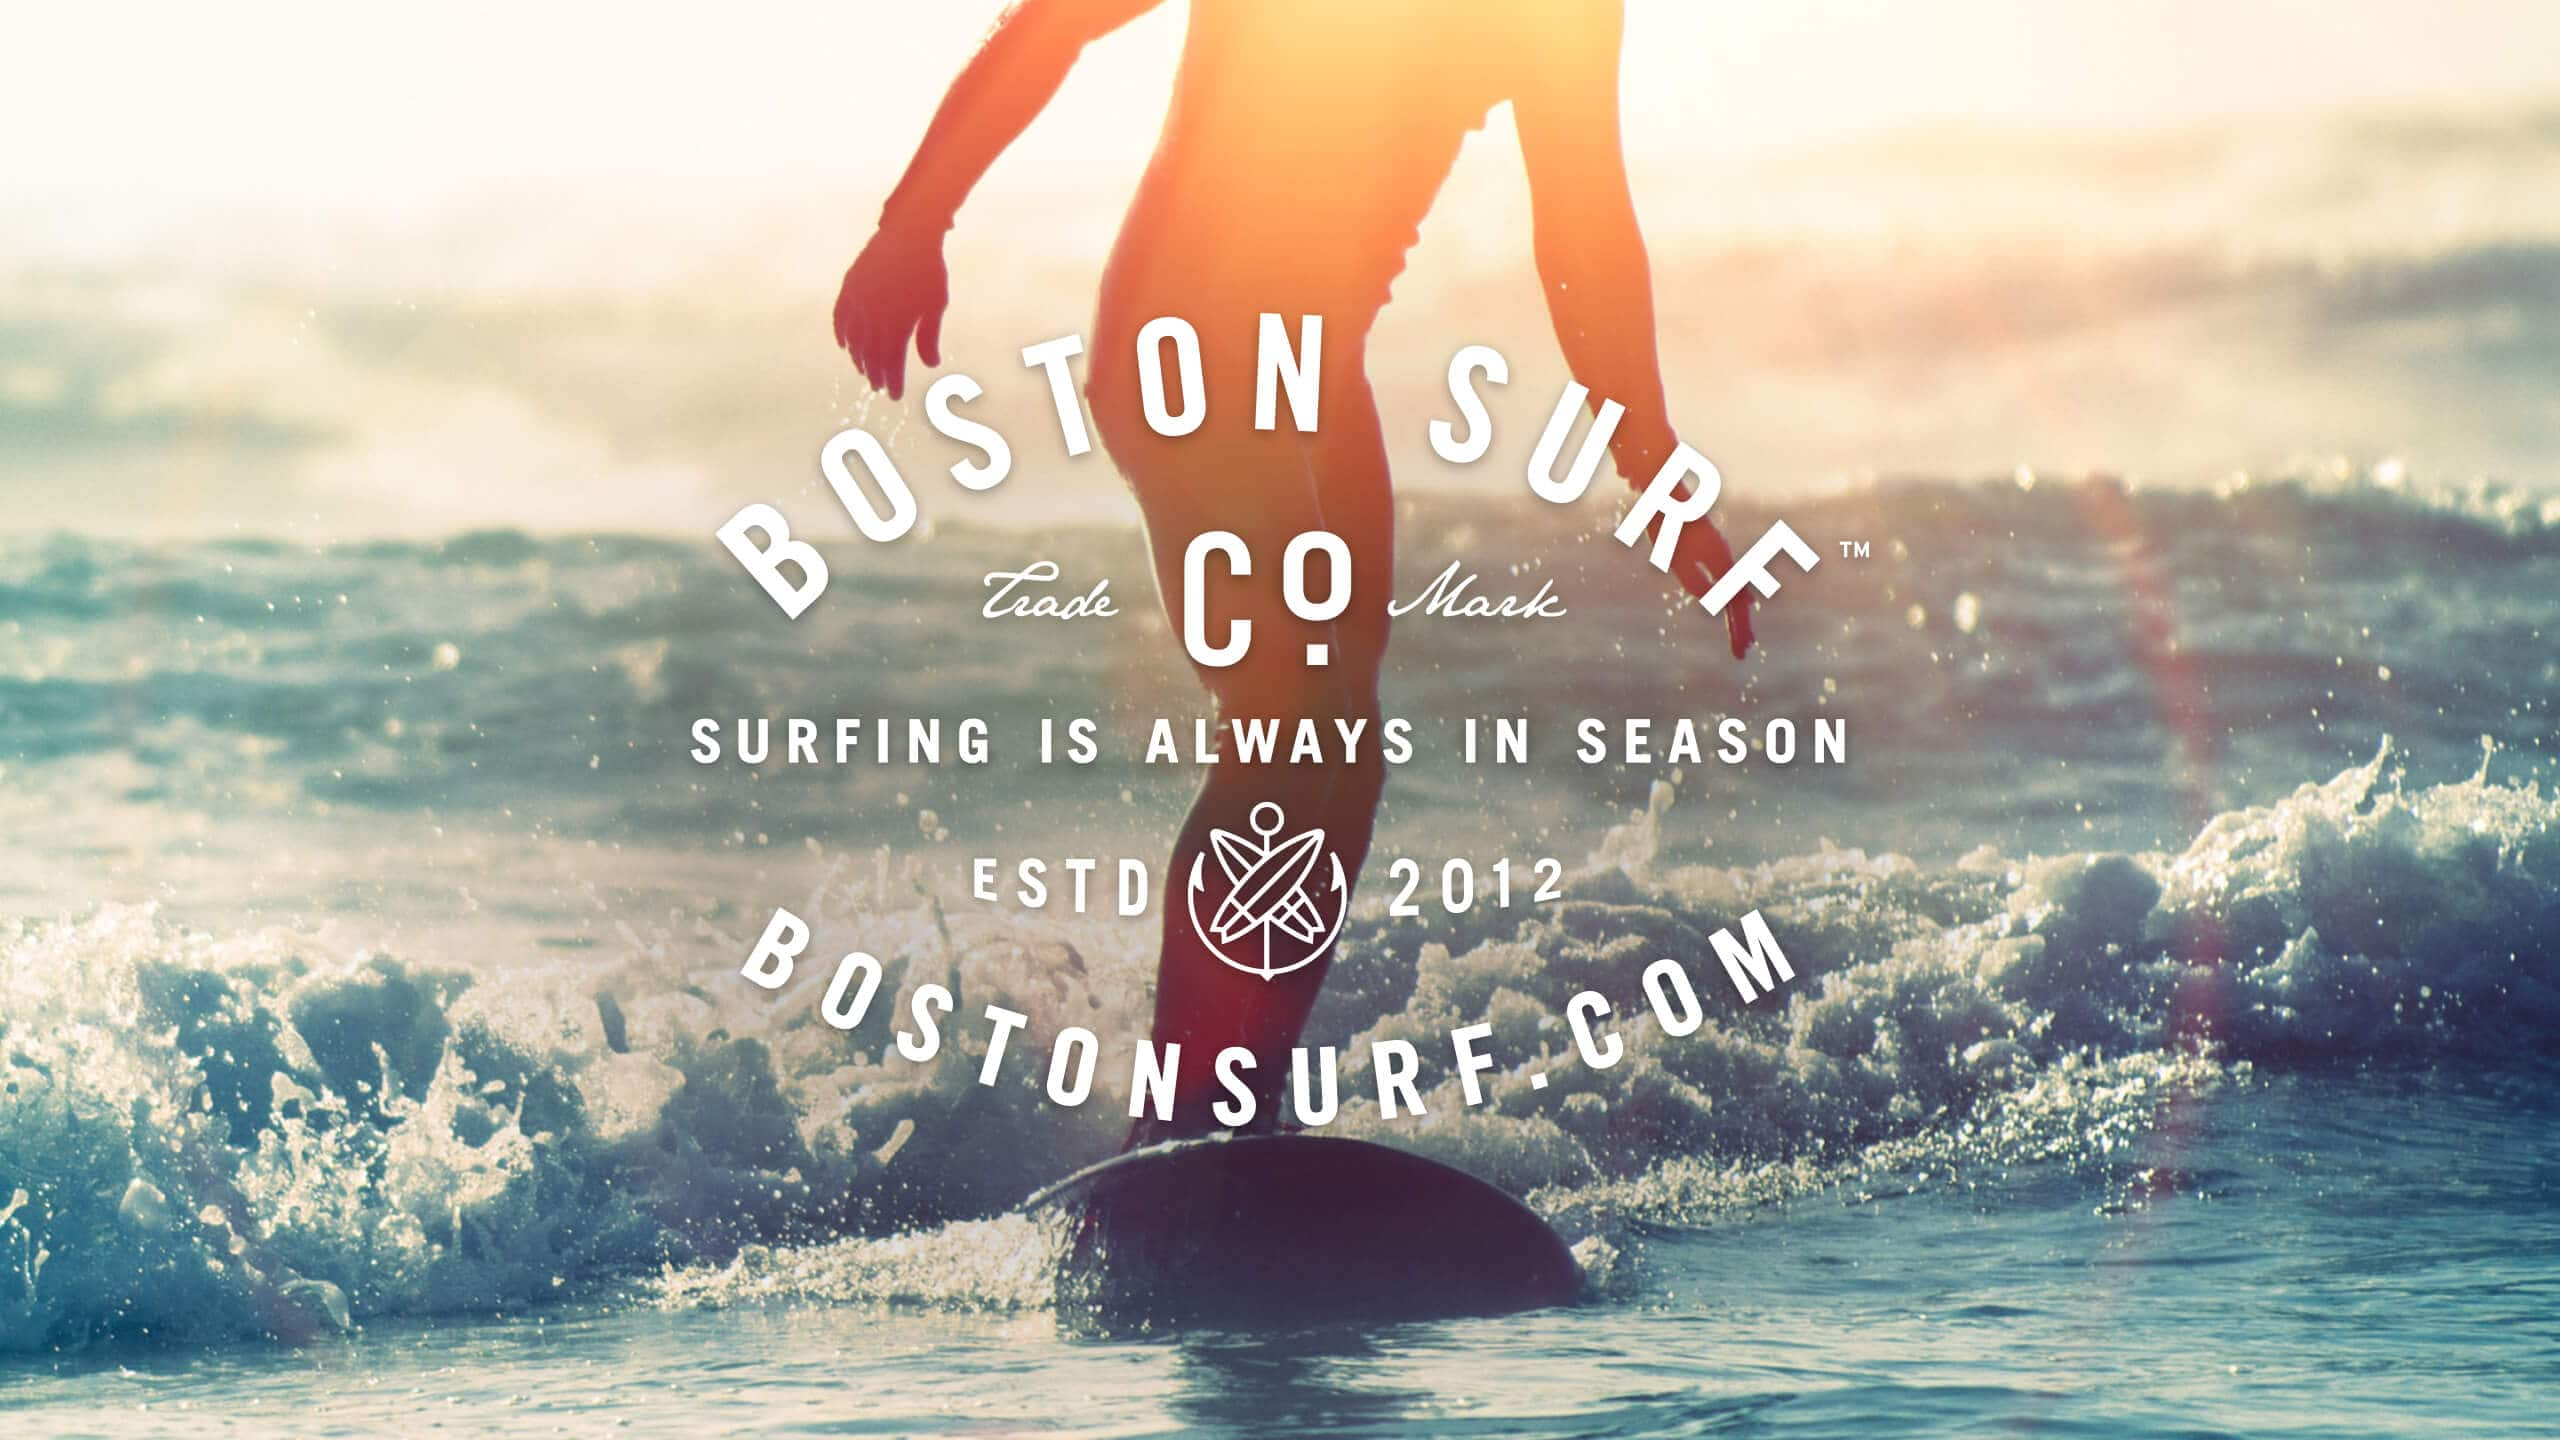 Boston Surf Co.